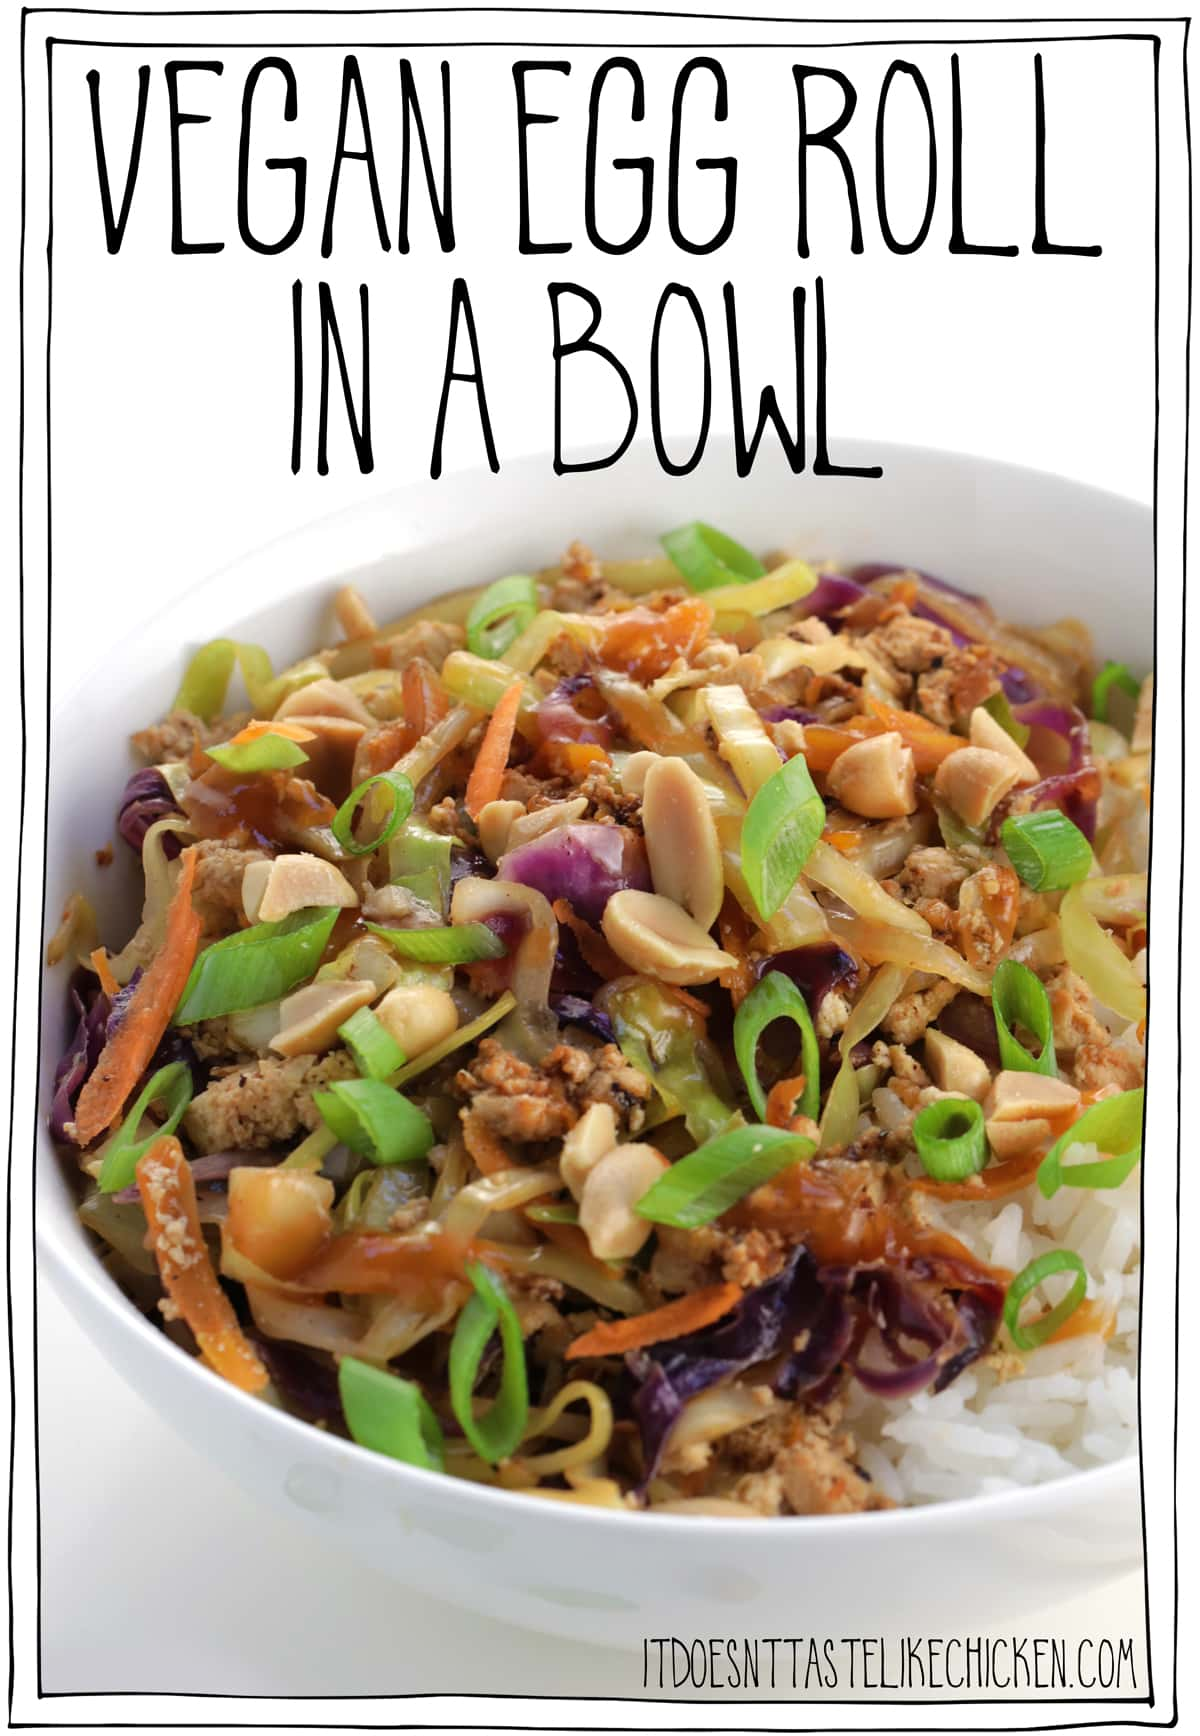 Vegan Egg Roll in a Bowl! This recipe tastes like greasy take out, but it's healthy, vegan, easy to make, 30-minute recipe, and so super delicious! Just like an egg roll but without the wrapper. Skip the fuss of working with wrappers or using a fatty deep fryer, and meal prep this easy weeknight dinner. #itdoesnttastelikechicken #veganrecipes